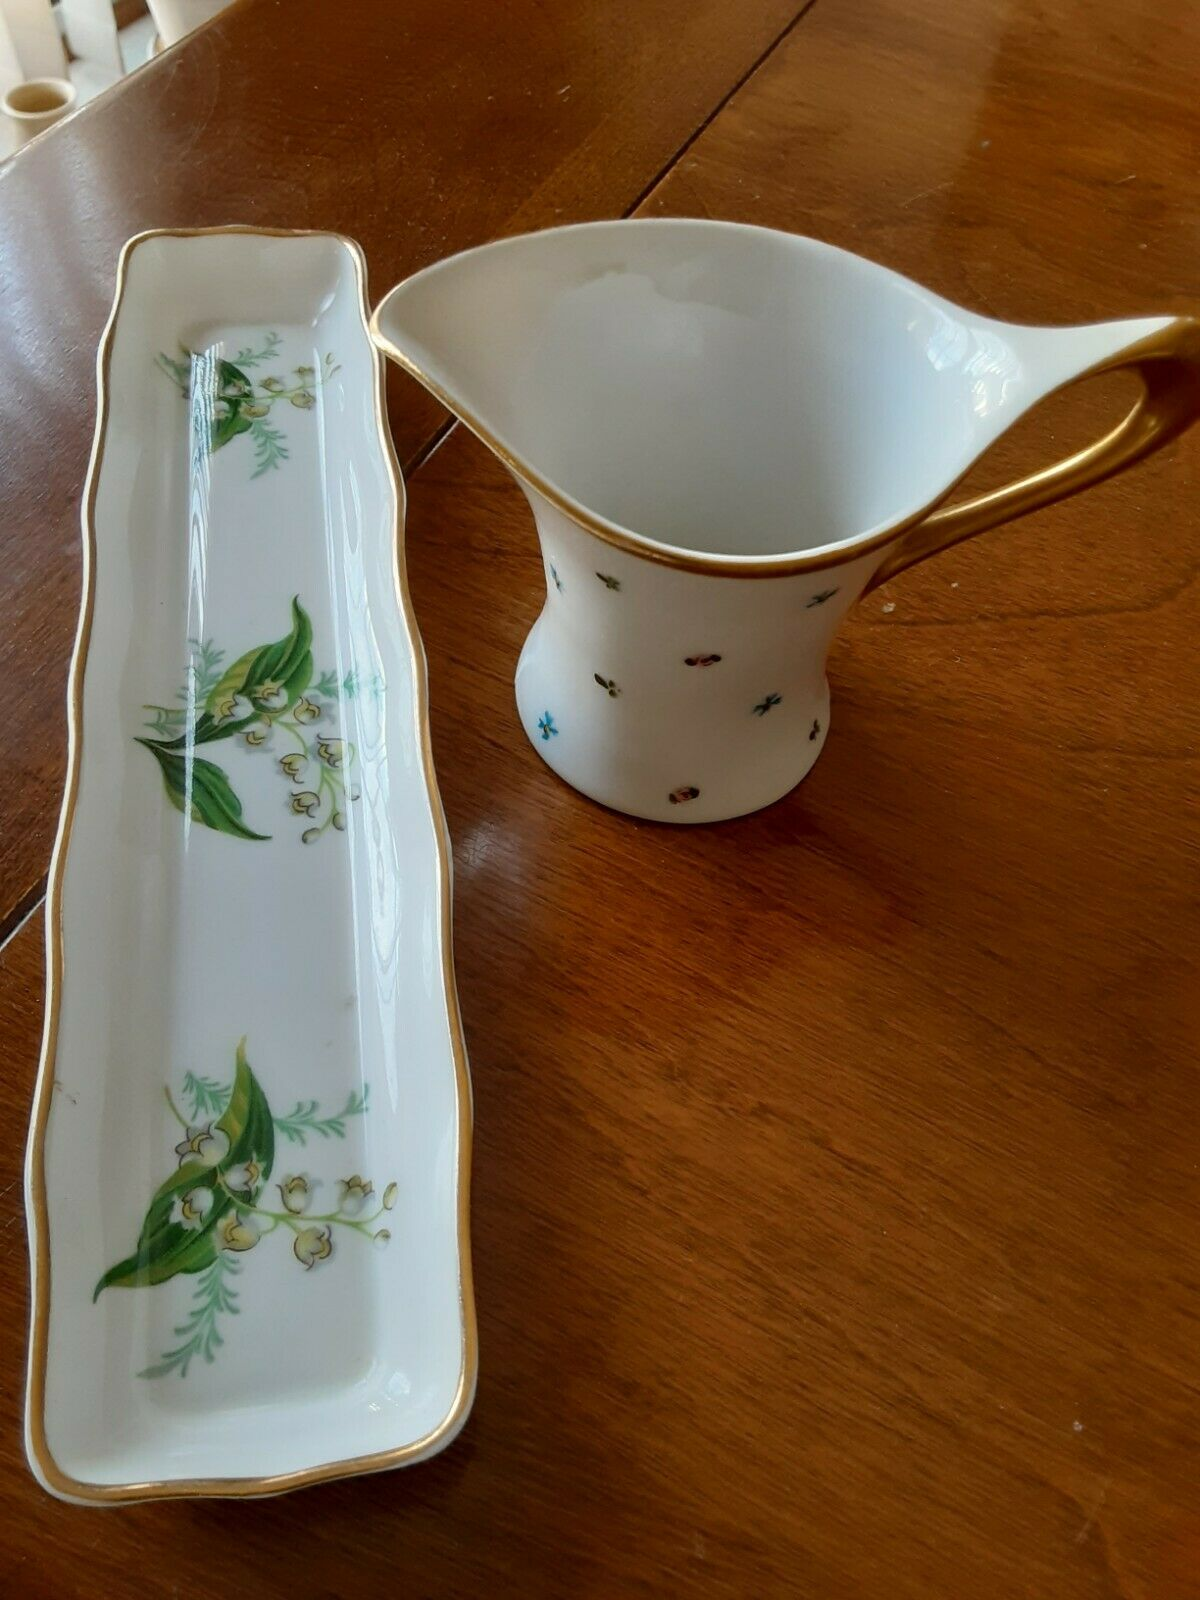 Hammersley 7 Long Dish And Small Pitcher Japanese - $10.00